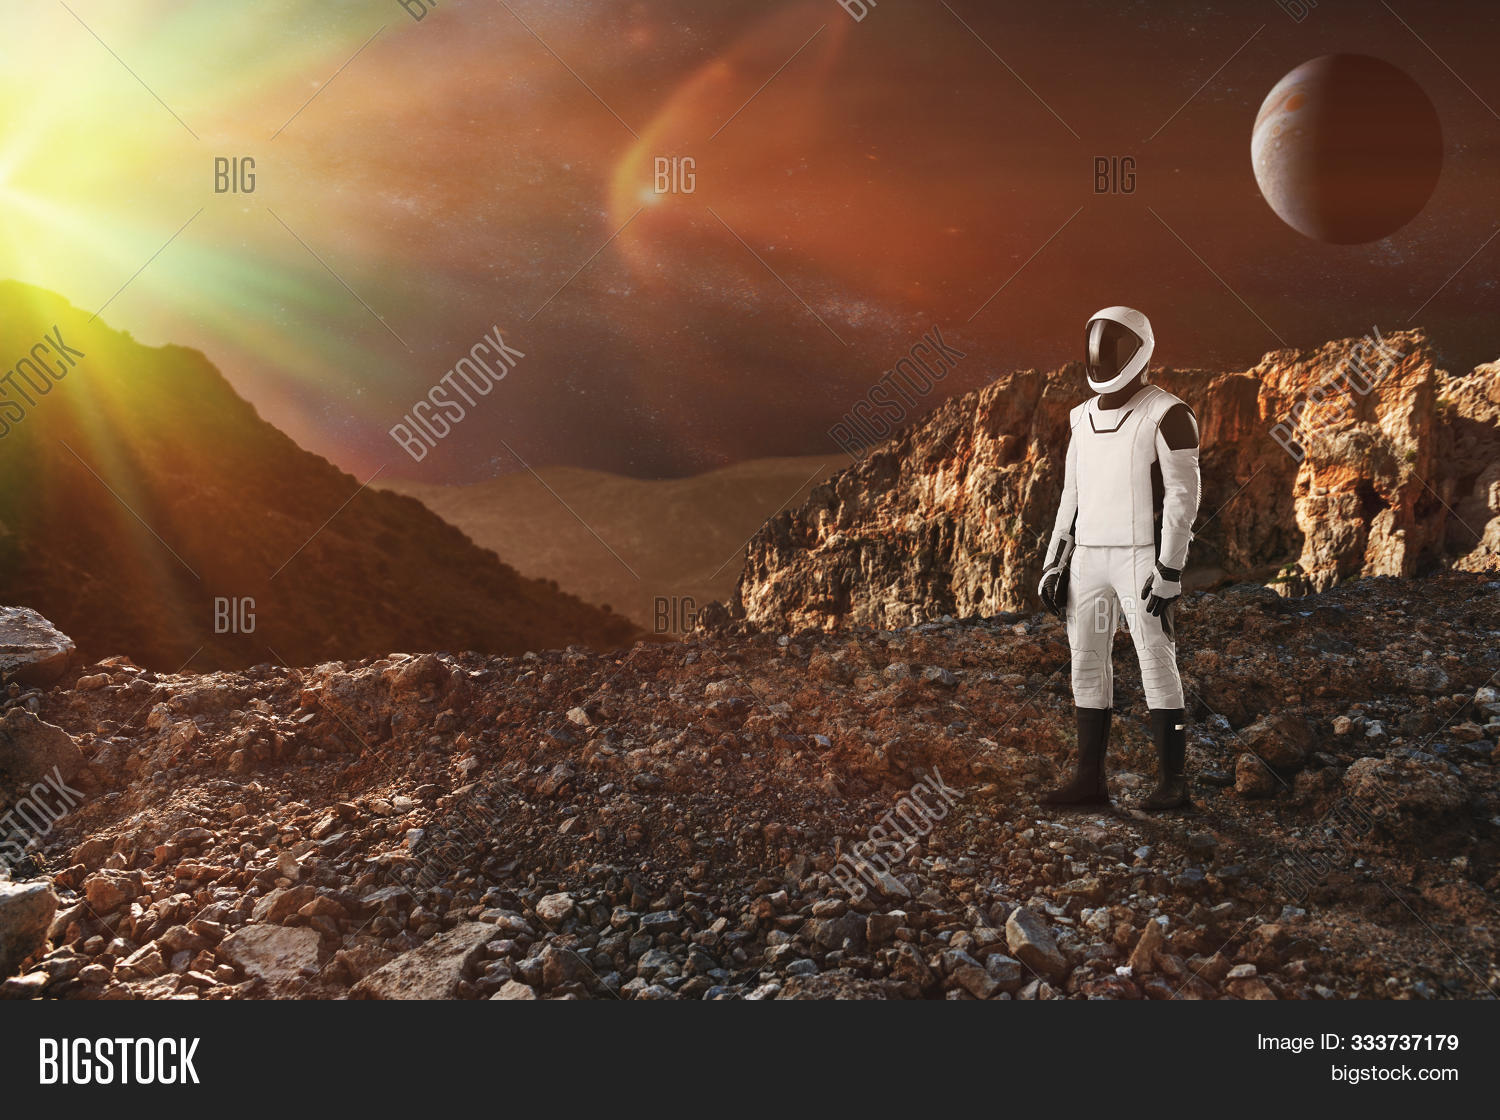 Spaceman Walks On The Alien Planet. Space Mission. Elements Of This Image Furnished By Nasa.